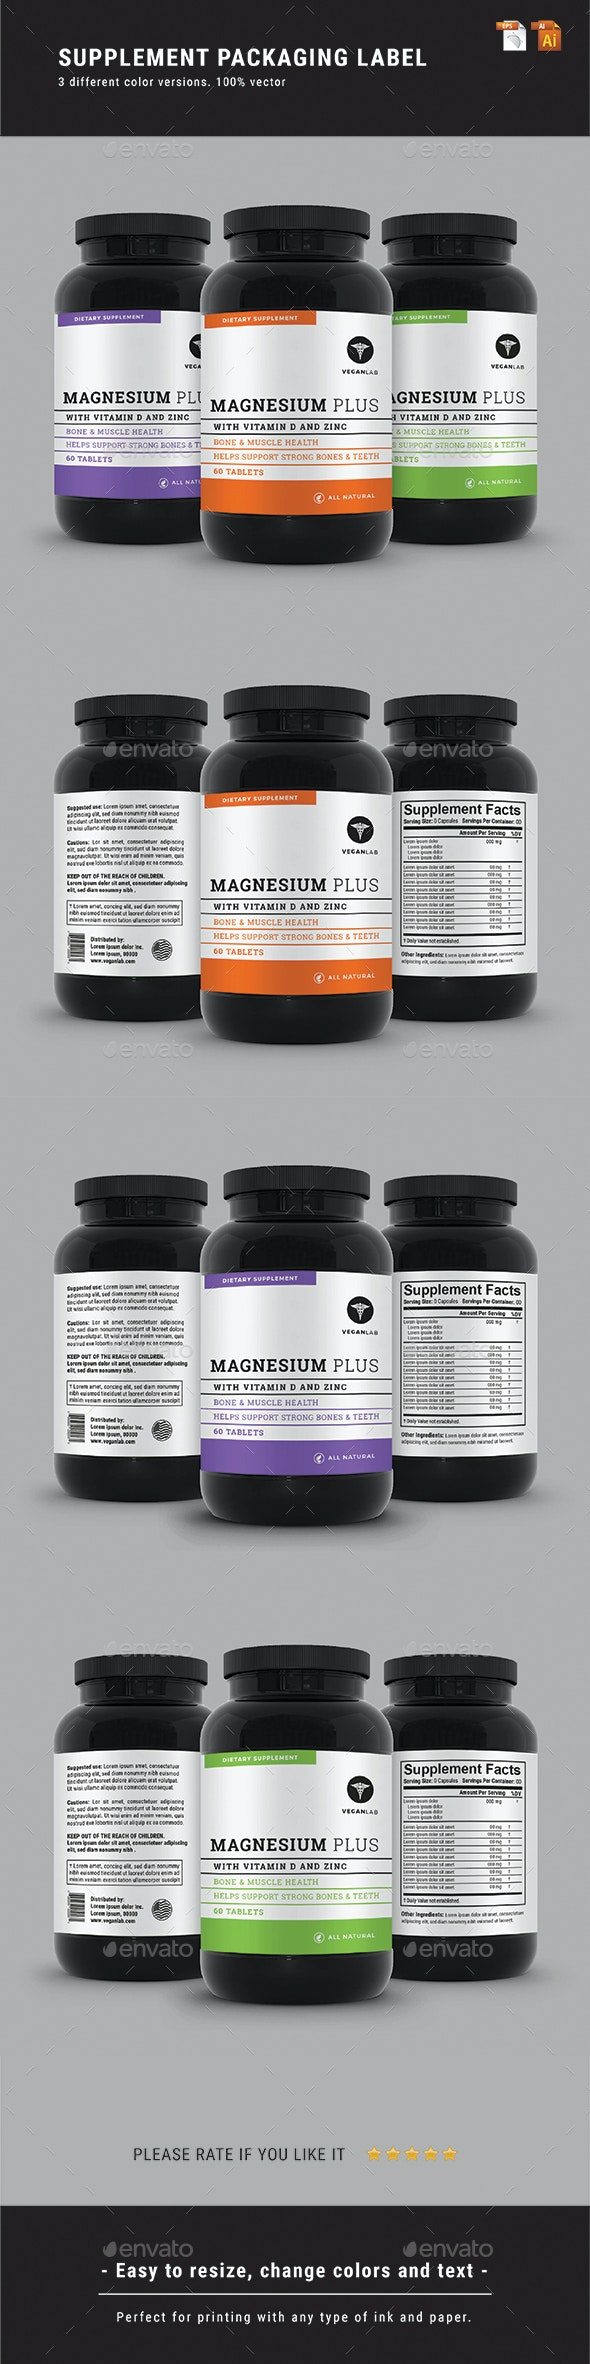 Supplement Packaging Label